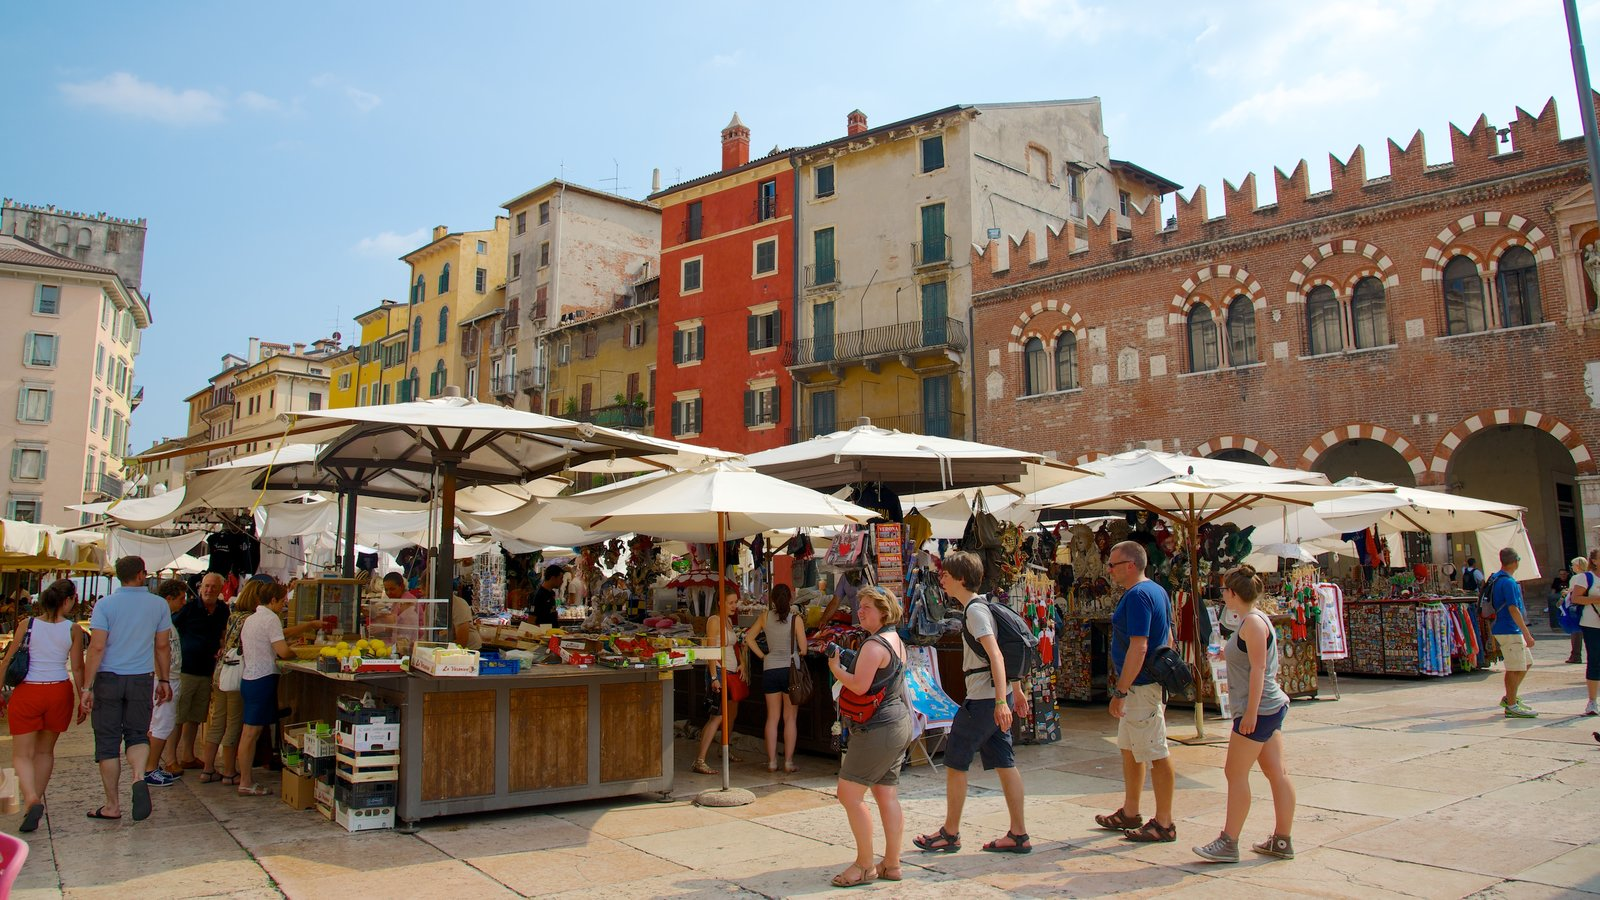 Piazza delle Erbe featuring a city, cafe lifestyle and outdoor eating